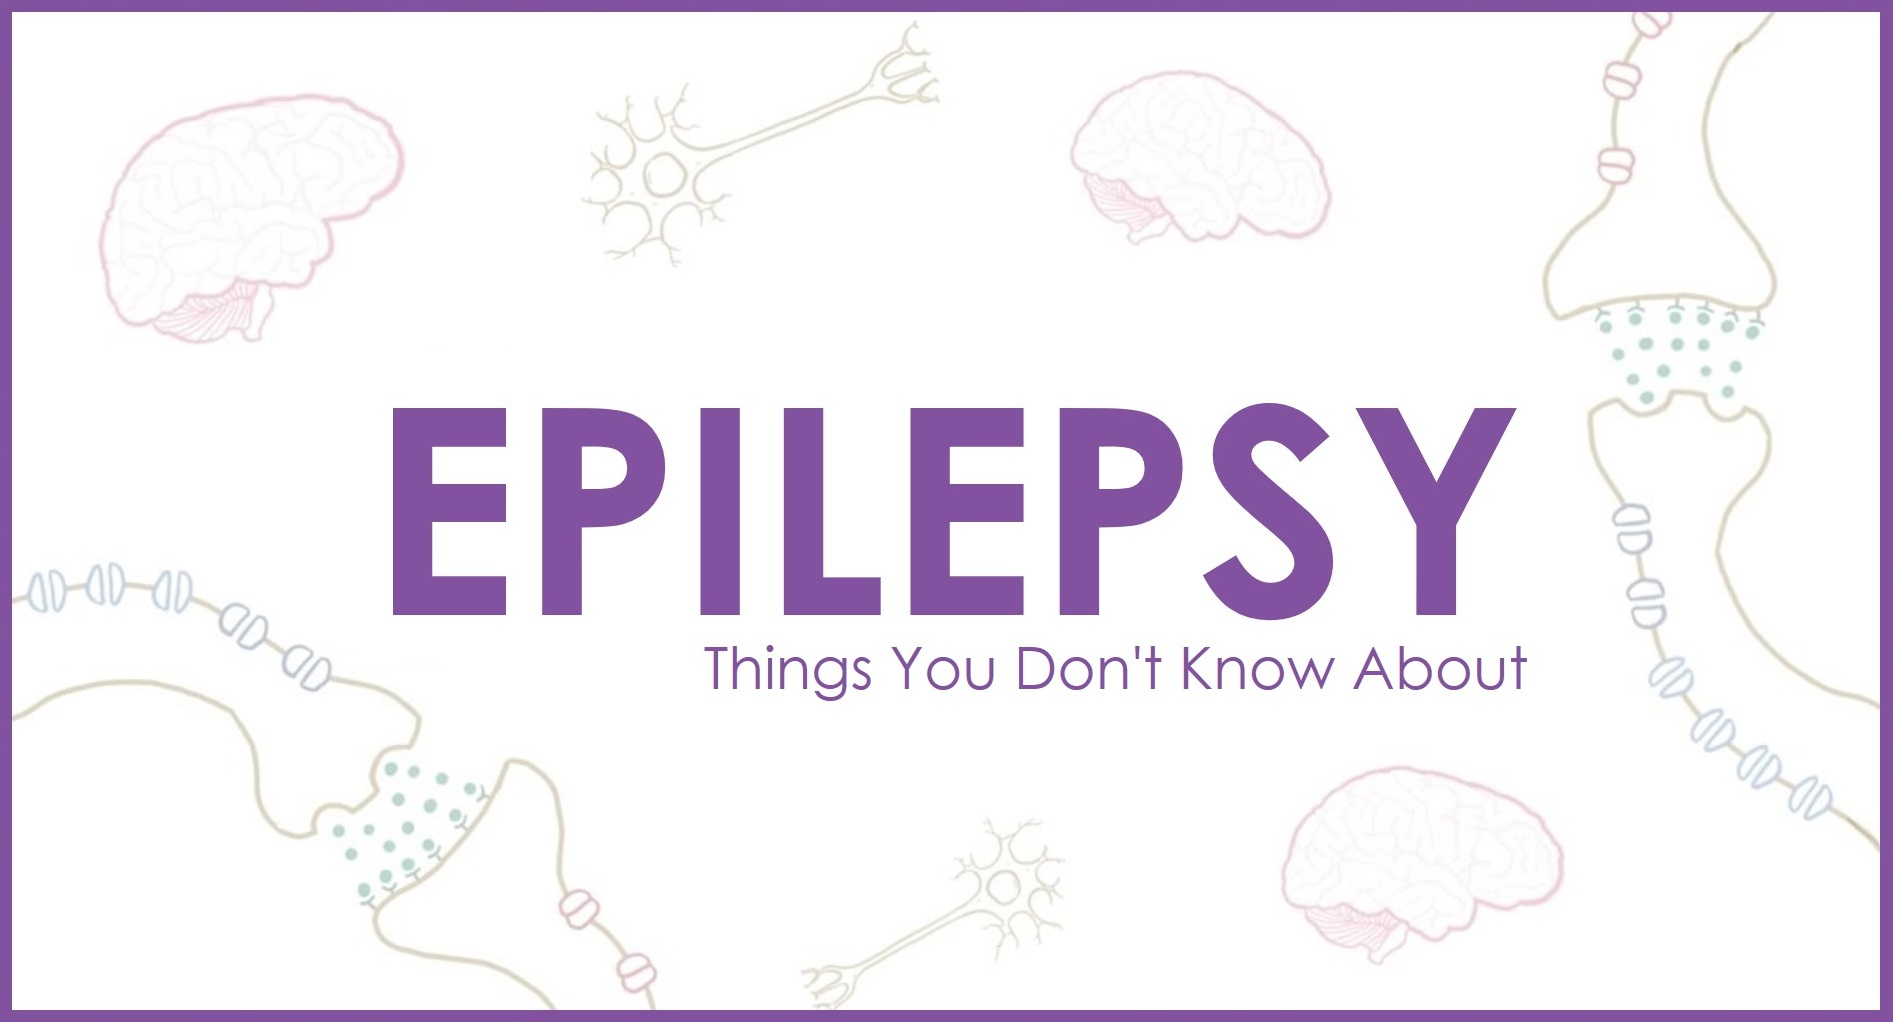 5 Things You Don't Know About Epilepsy